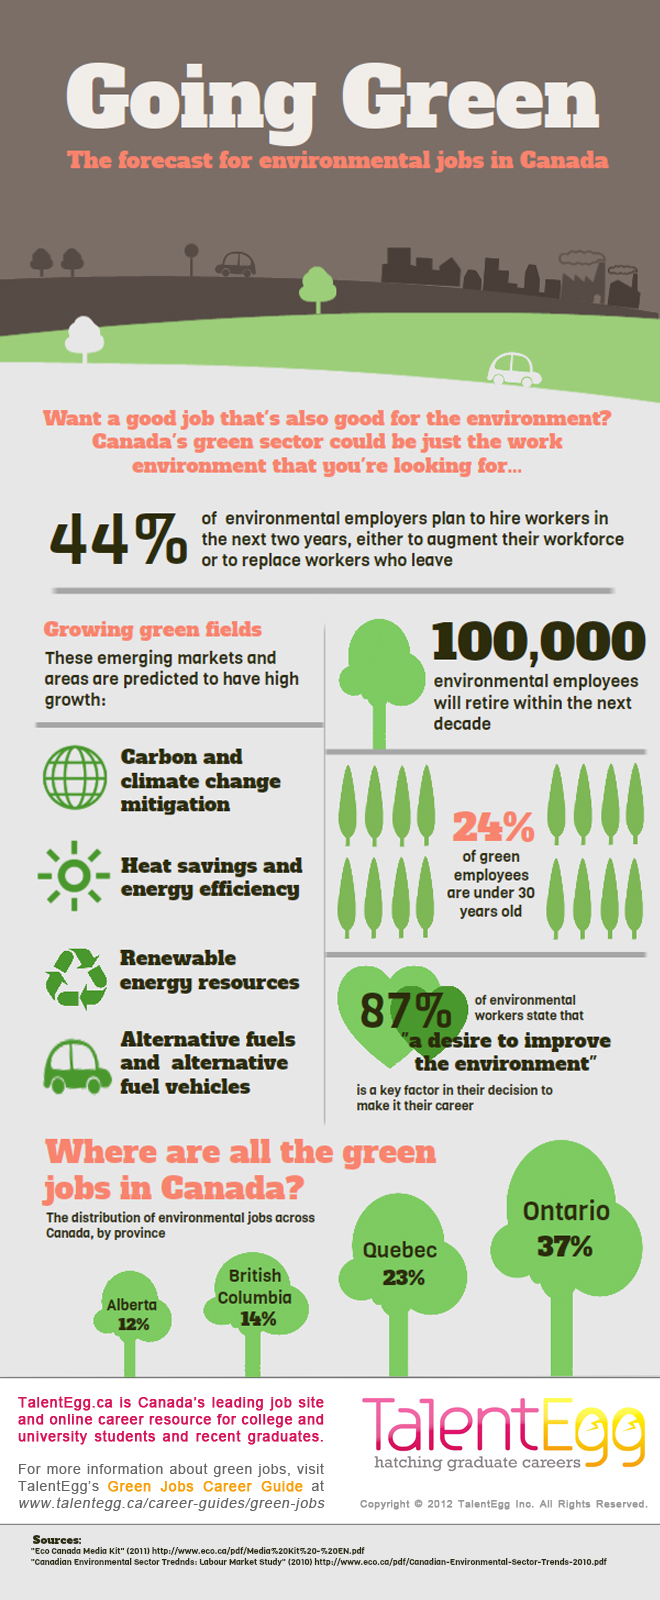 going-green-the-forecast-for-environmental-jobs-in-canada_50477f99ddb6a